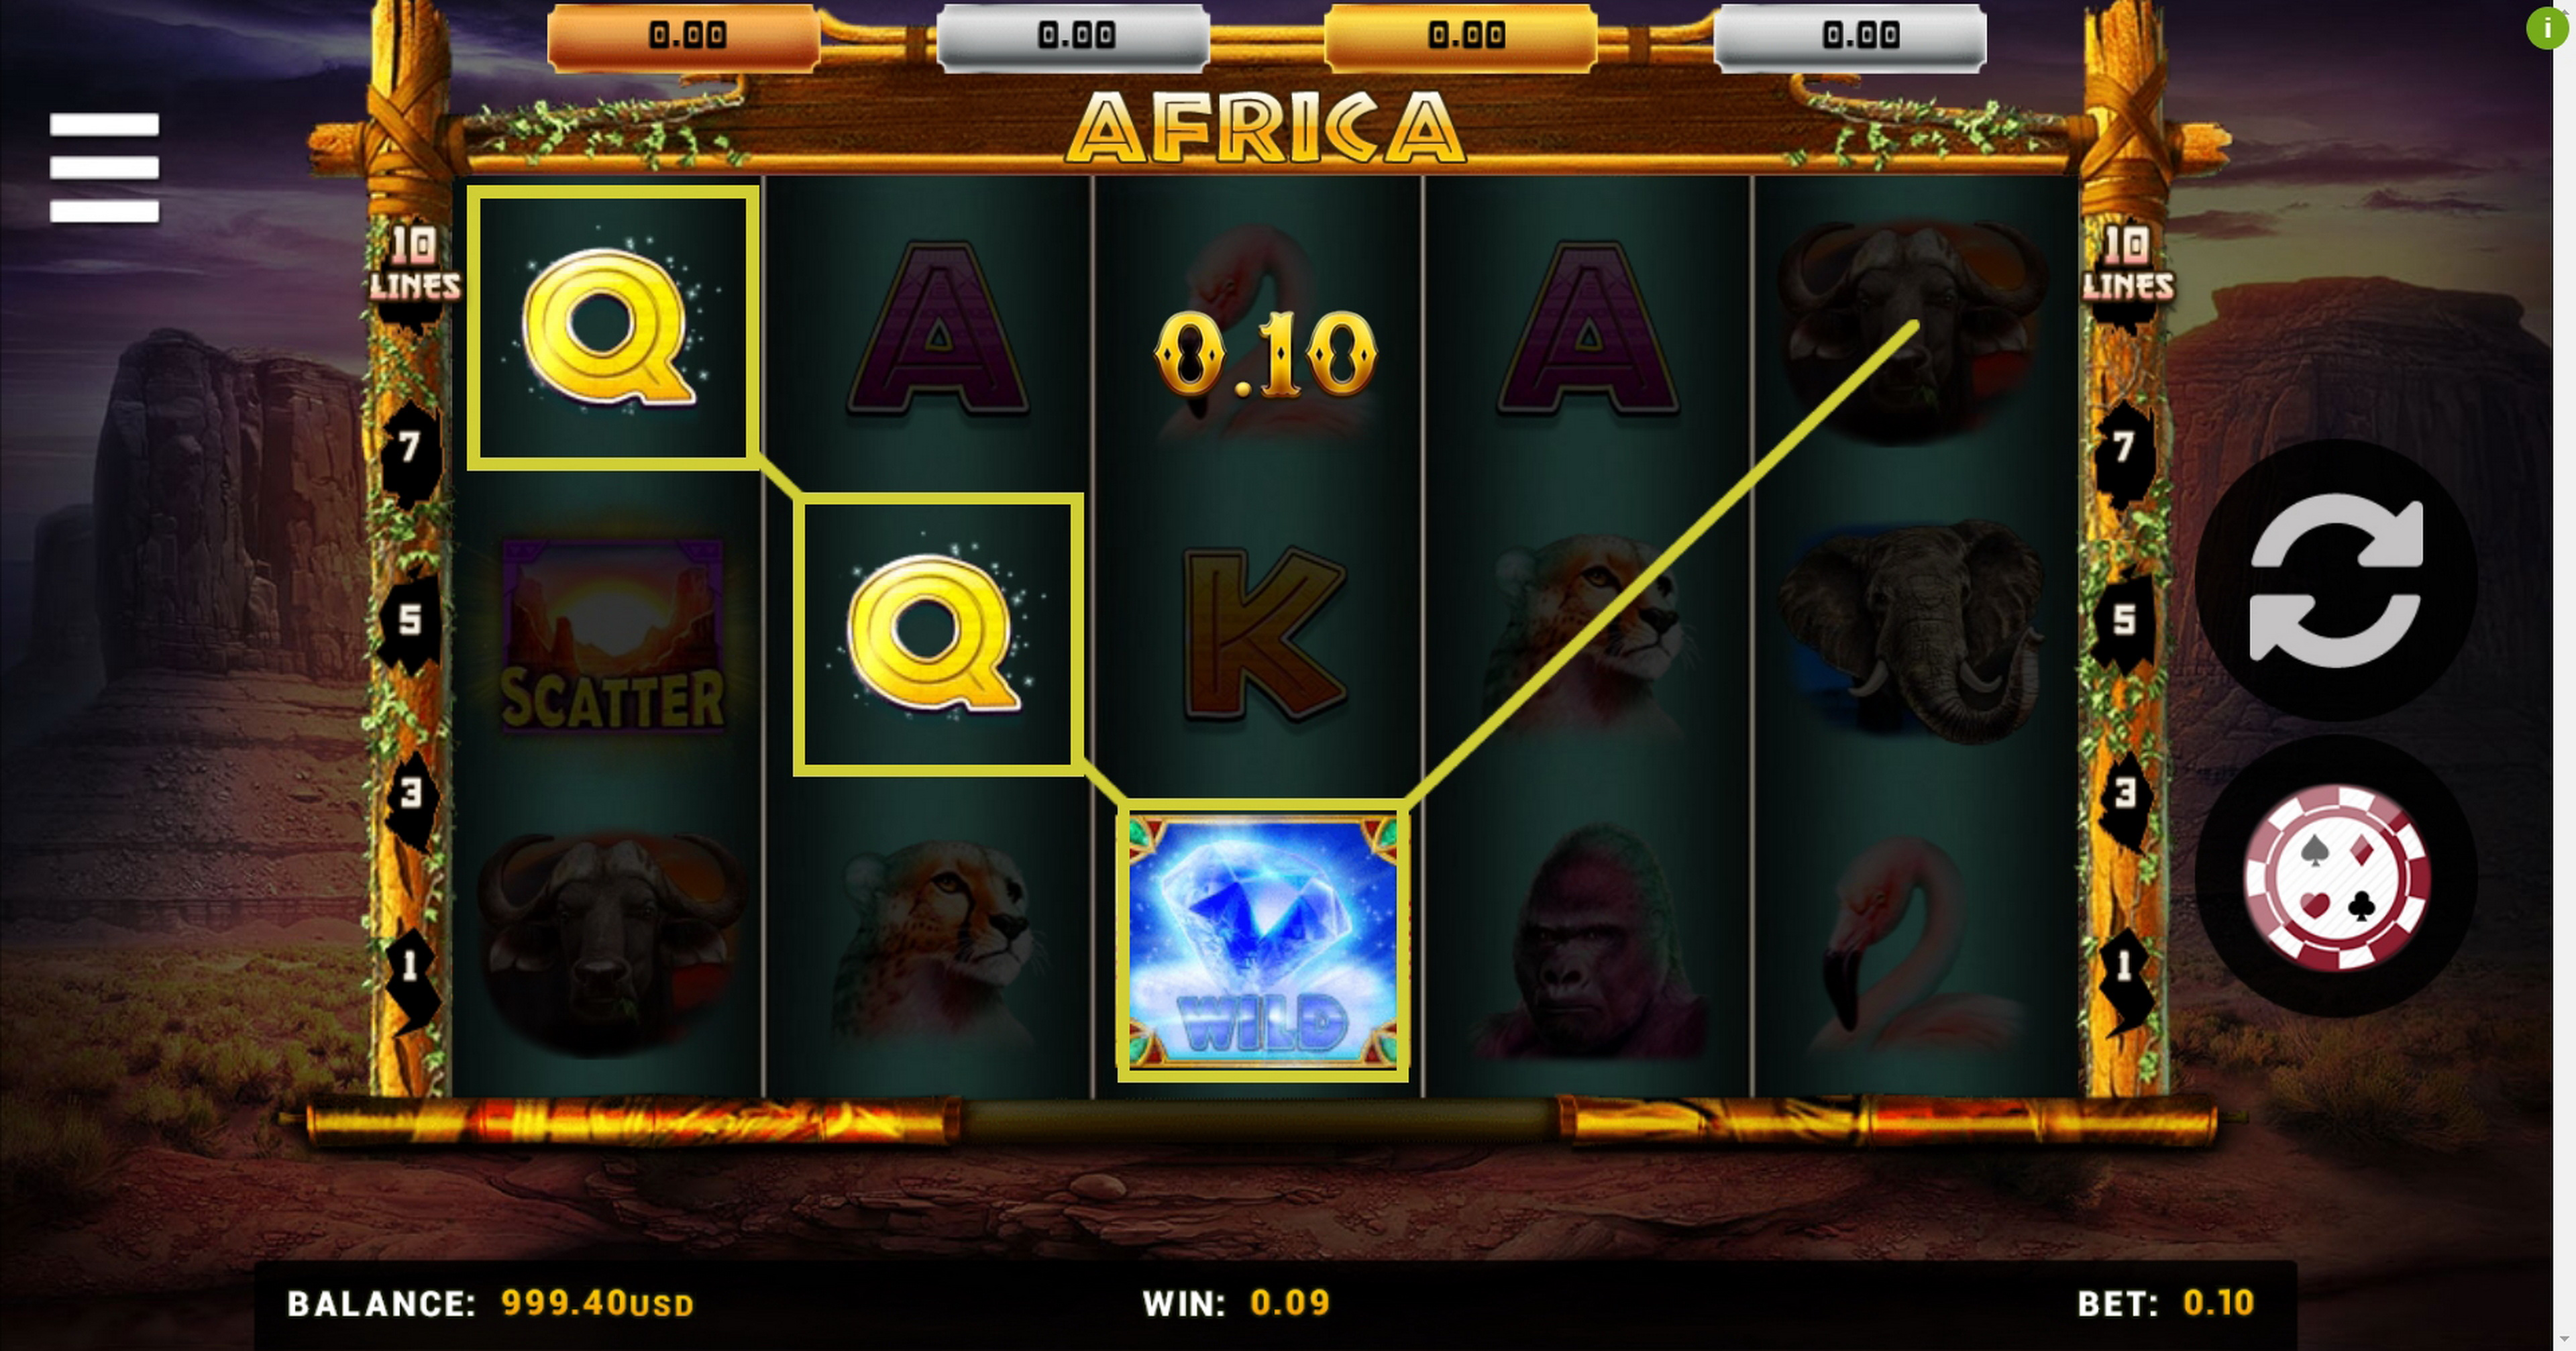 Win Money in Africa (Betsense) Free Slot Game by Betsense